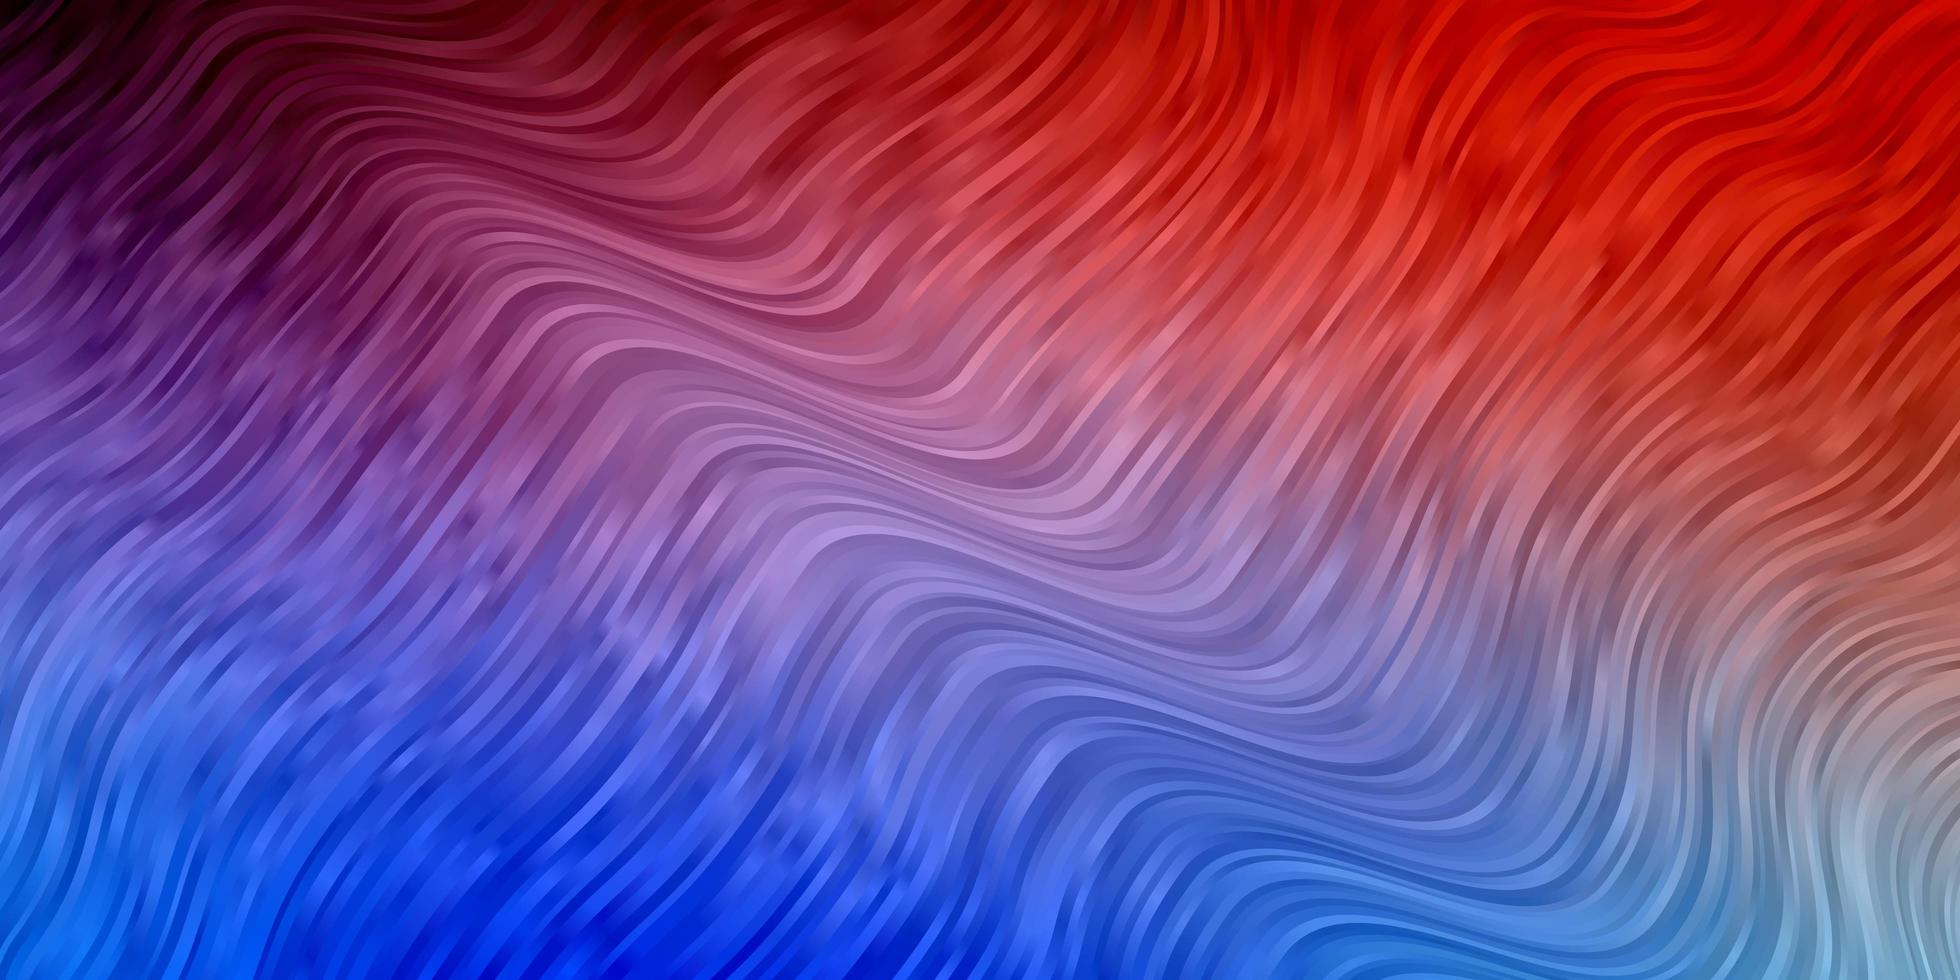 Light Blue, Red background with curved lines. vector